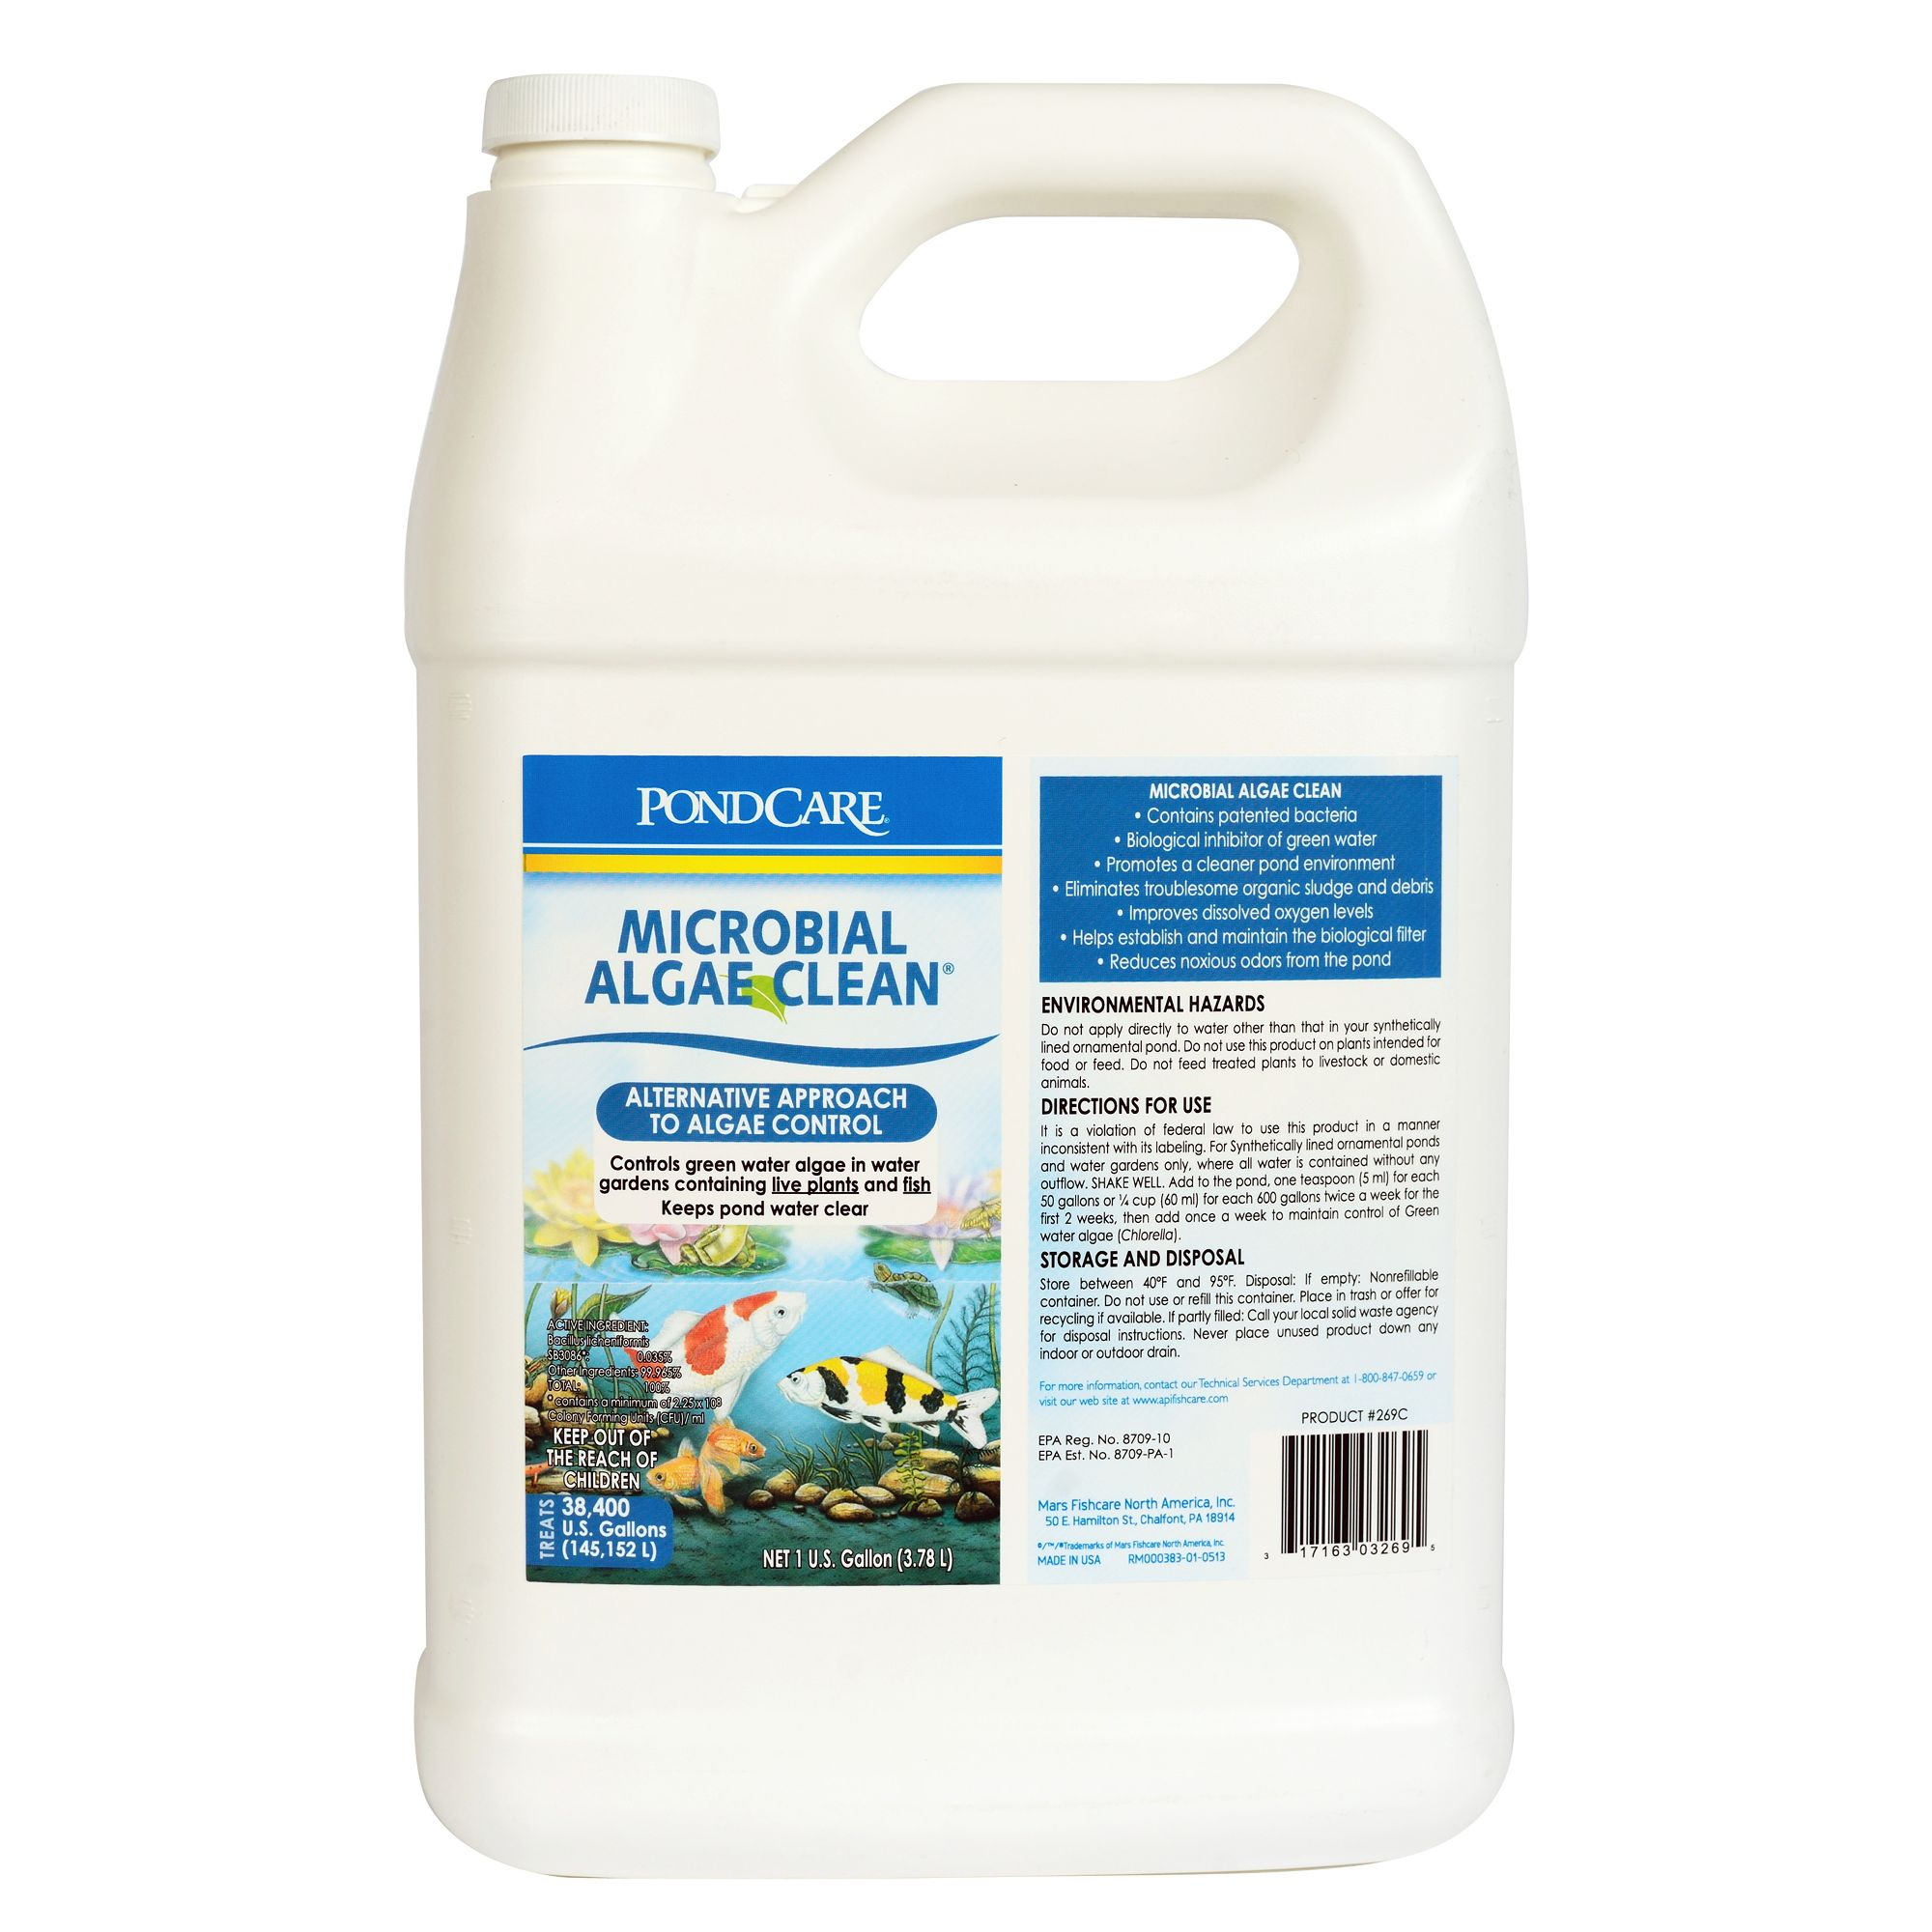 Api Pond Microbial Algae Clean size: 1 Gal